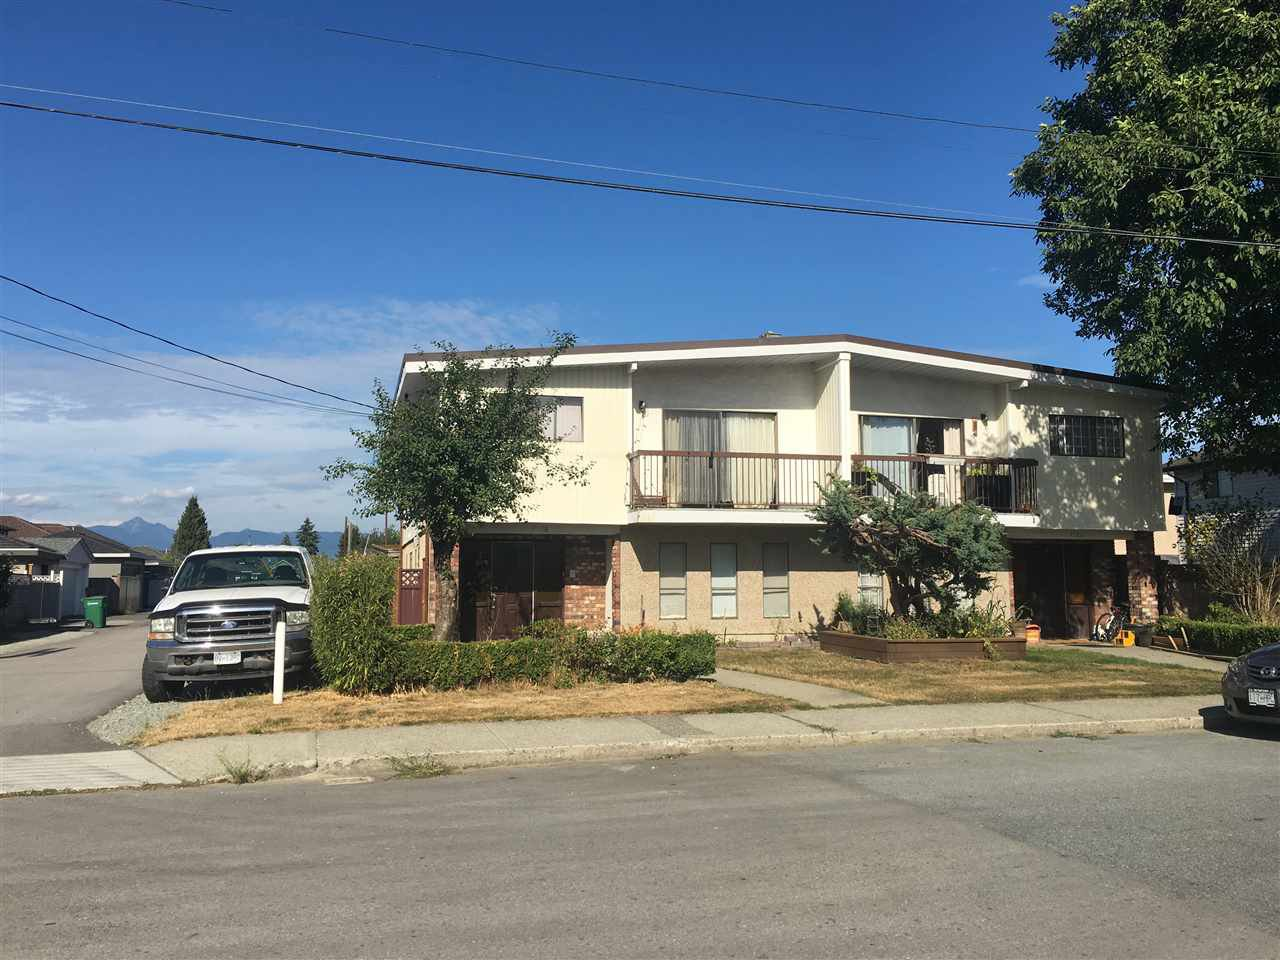 Main Photo: 7578 - 7580 4TH Street in Burnaby: East Burnaby House Duplex for sale (Burnaby East)  : MLS®# R2197532